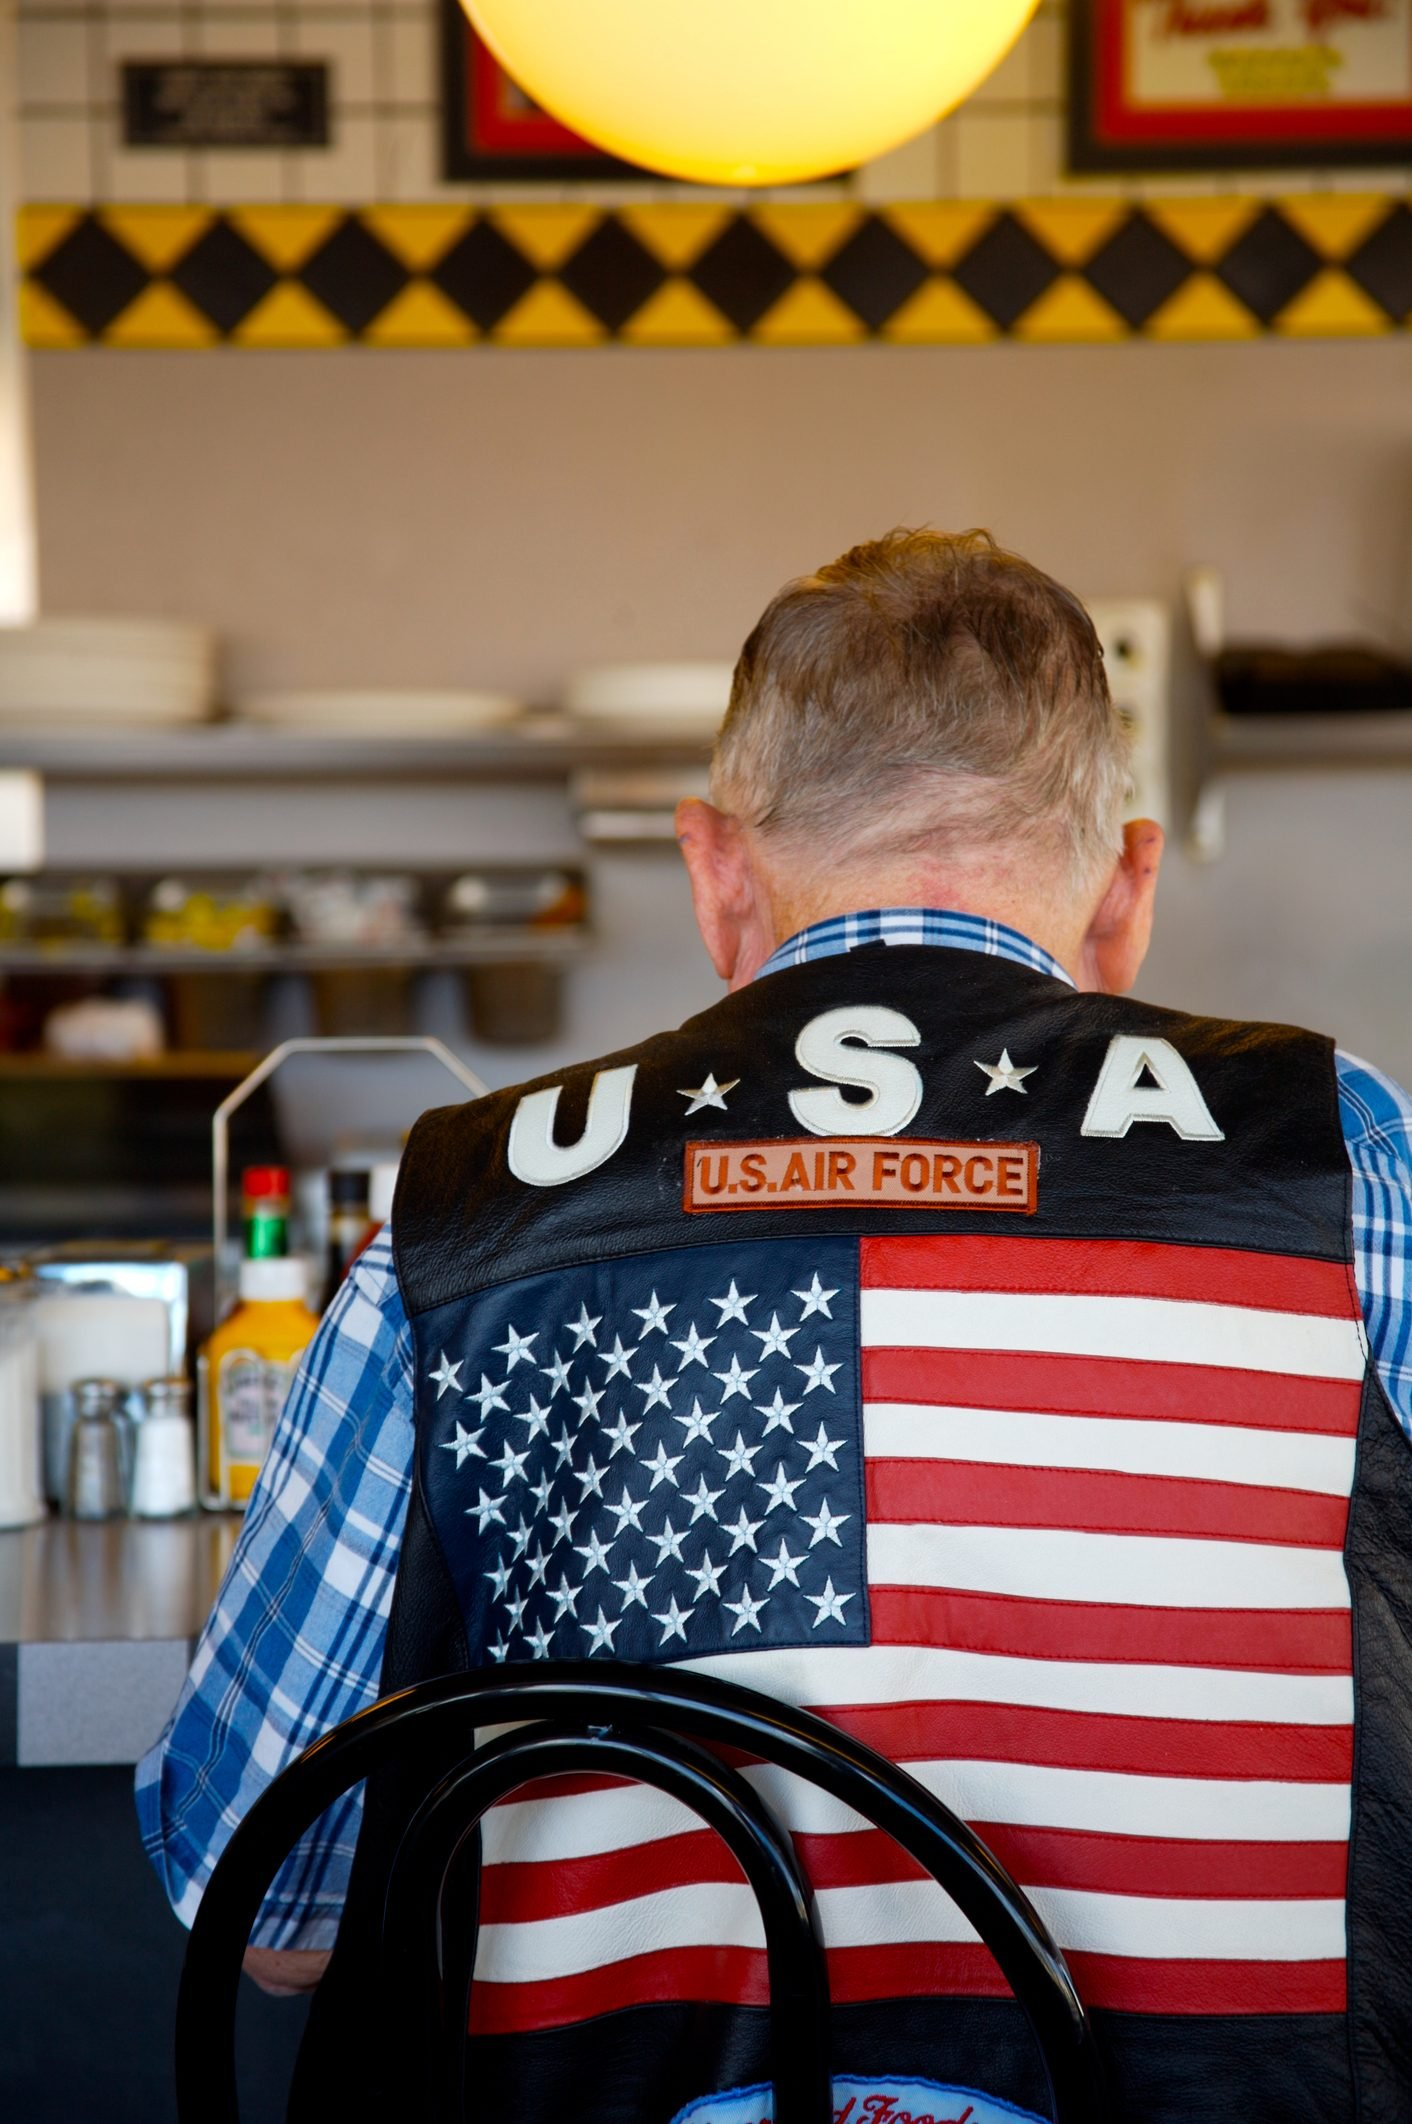 A man seated at a diner counter wearing an air force vest with a large american flag on the back.